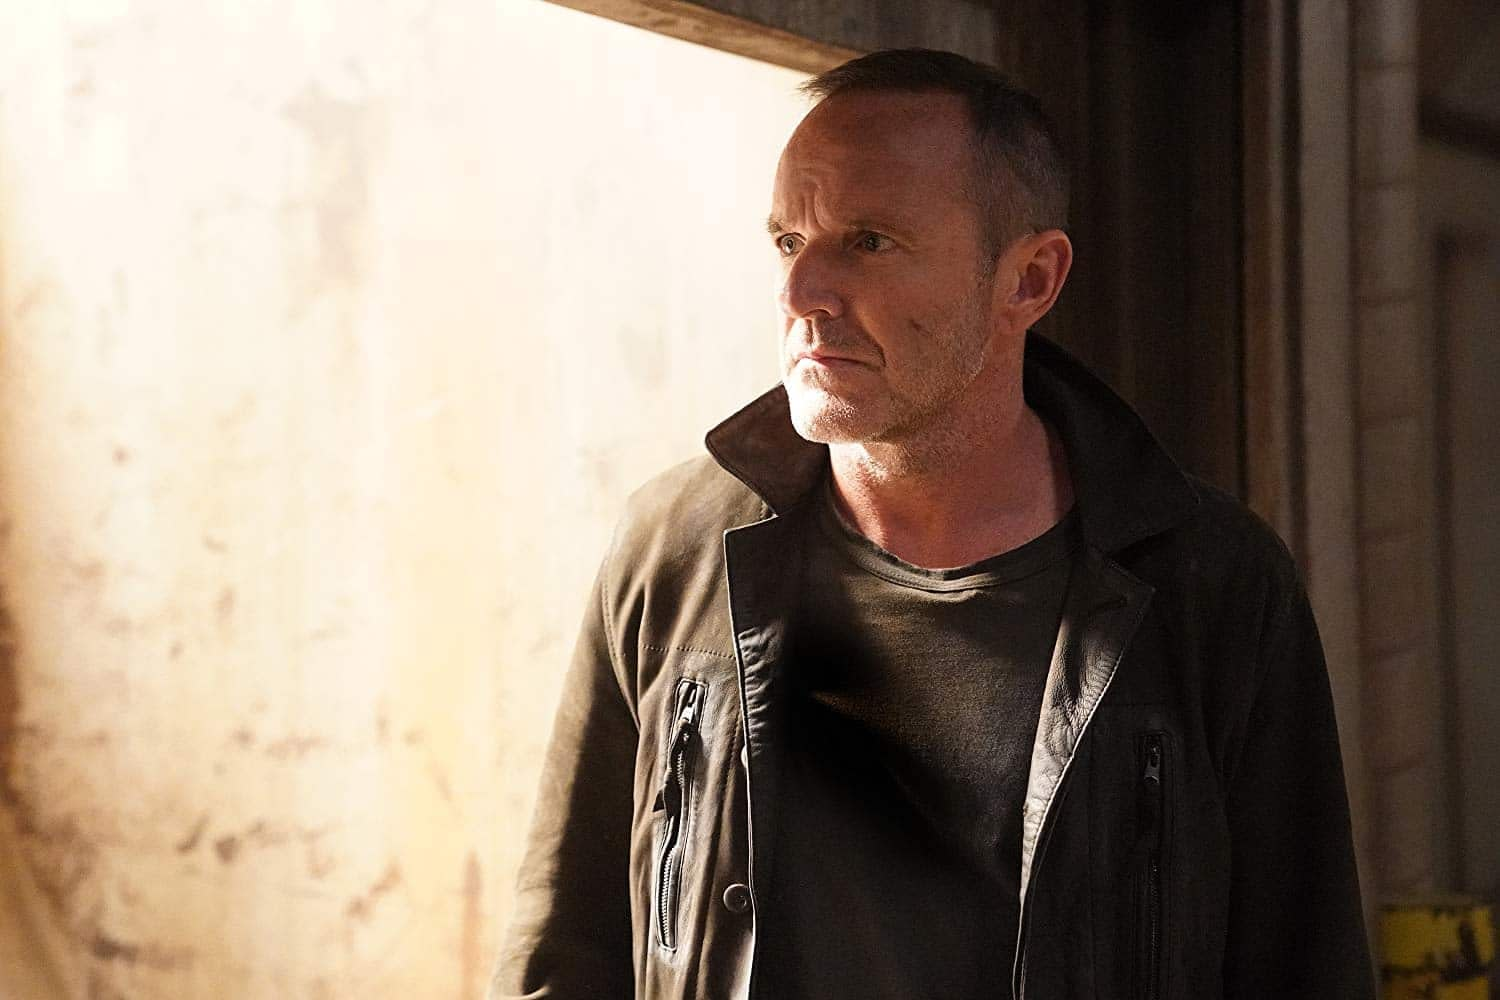 Agents of SHIELD Star Clark Gregg Would Love to Direct a Disney+ Show